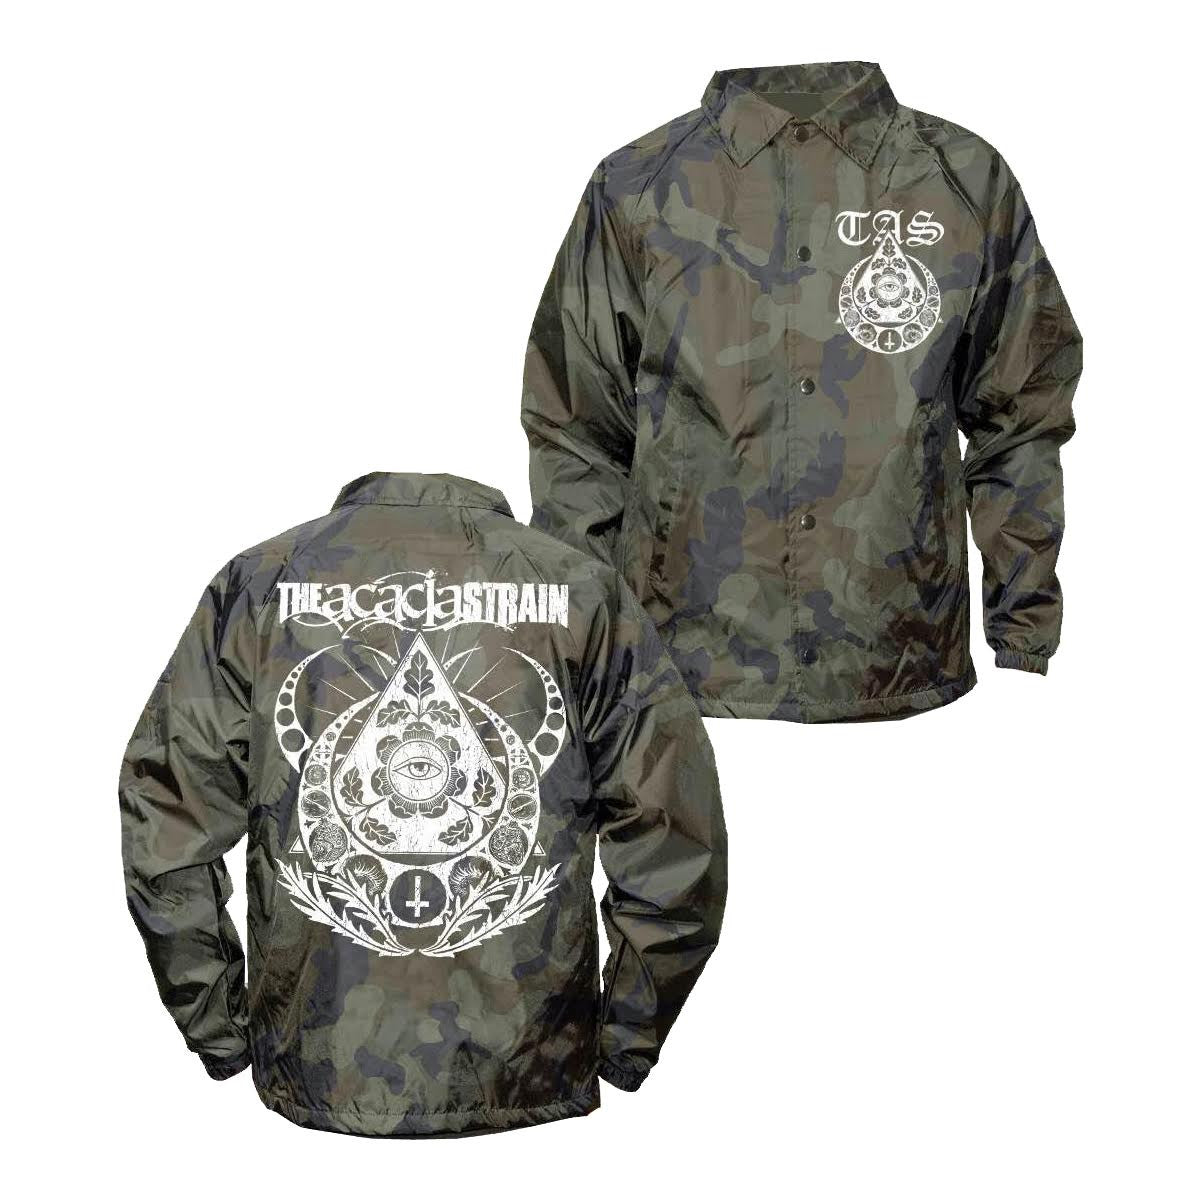 The Acacia Strain - Camo Windbreaker - MerchLimited - 1